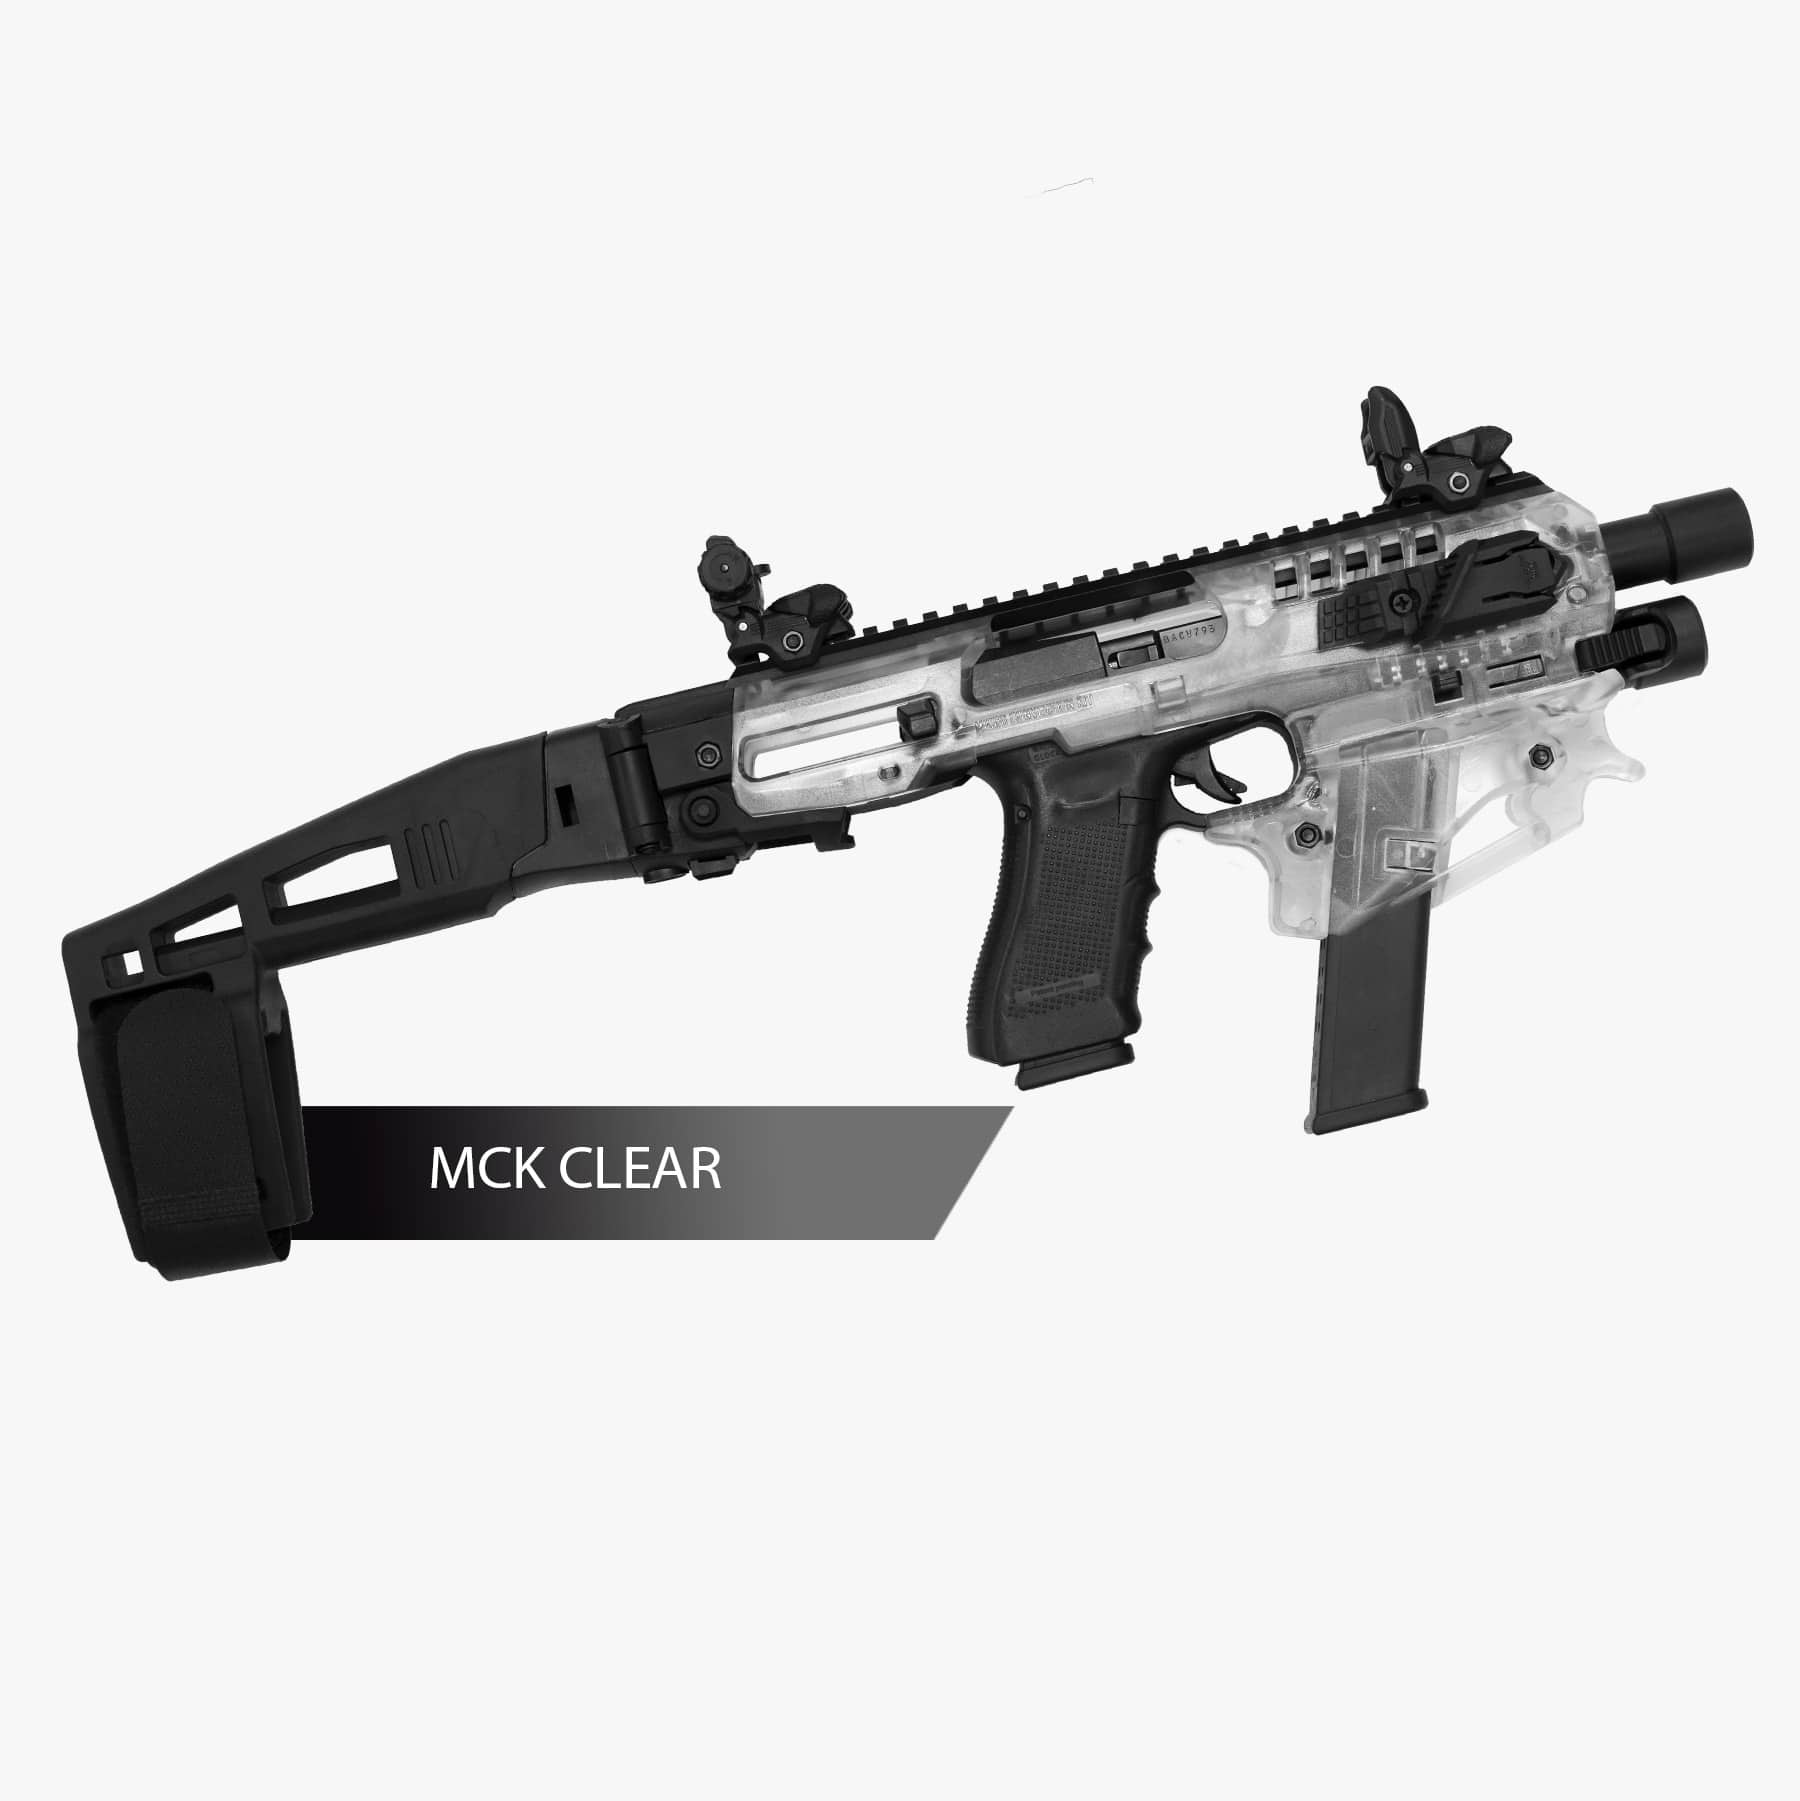 CAA Micro Conversion Kit for Polymer 80 Models V1/V2 Glock 17/19/22/23/31, Long Stabilizer, Clear